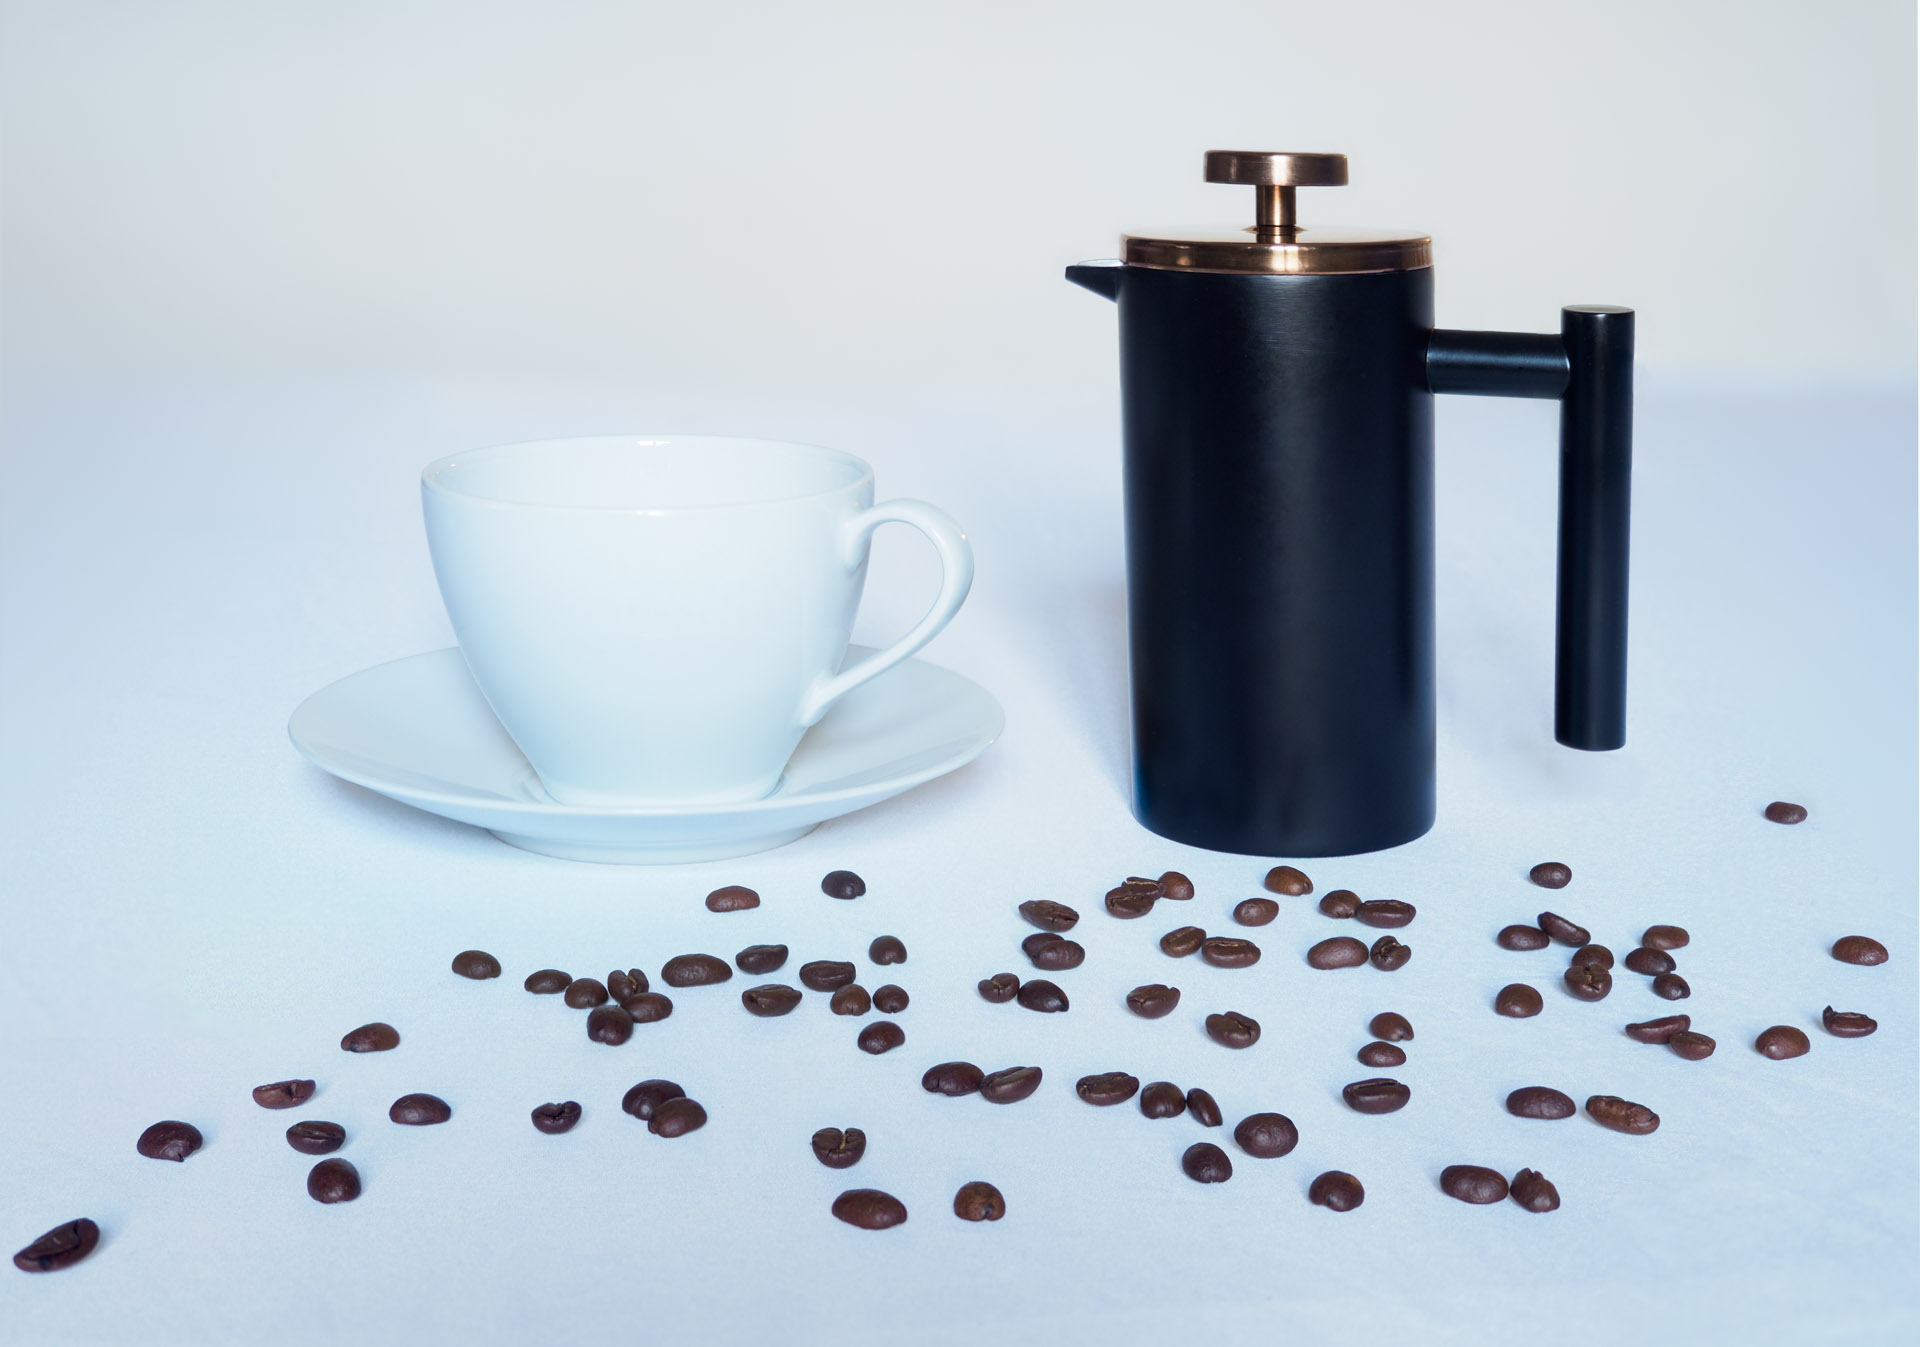 Coffee jug - product photography by Ivor Rackham